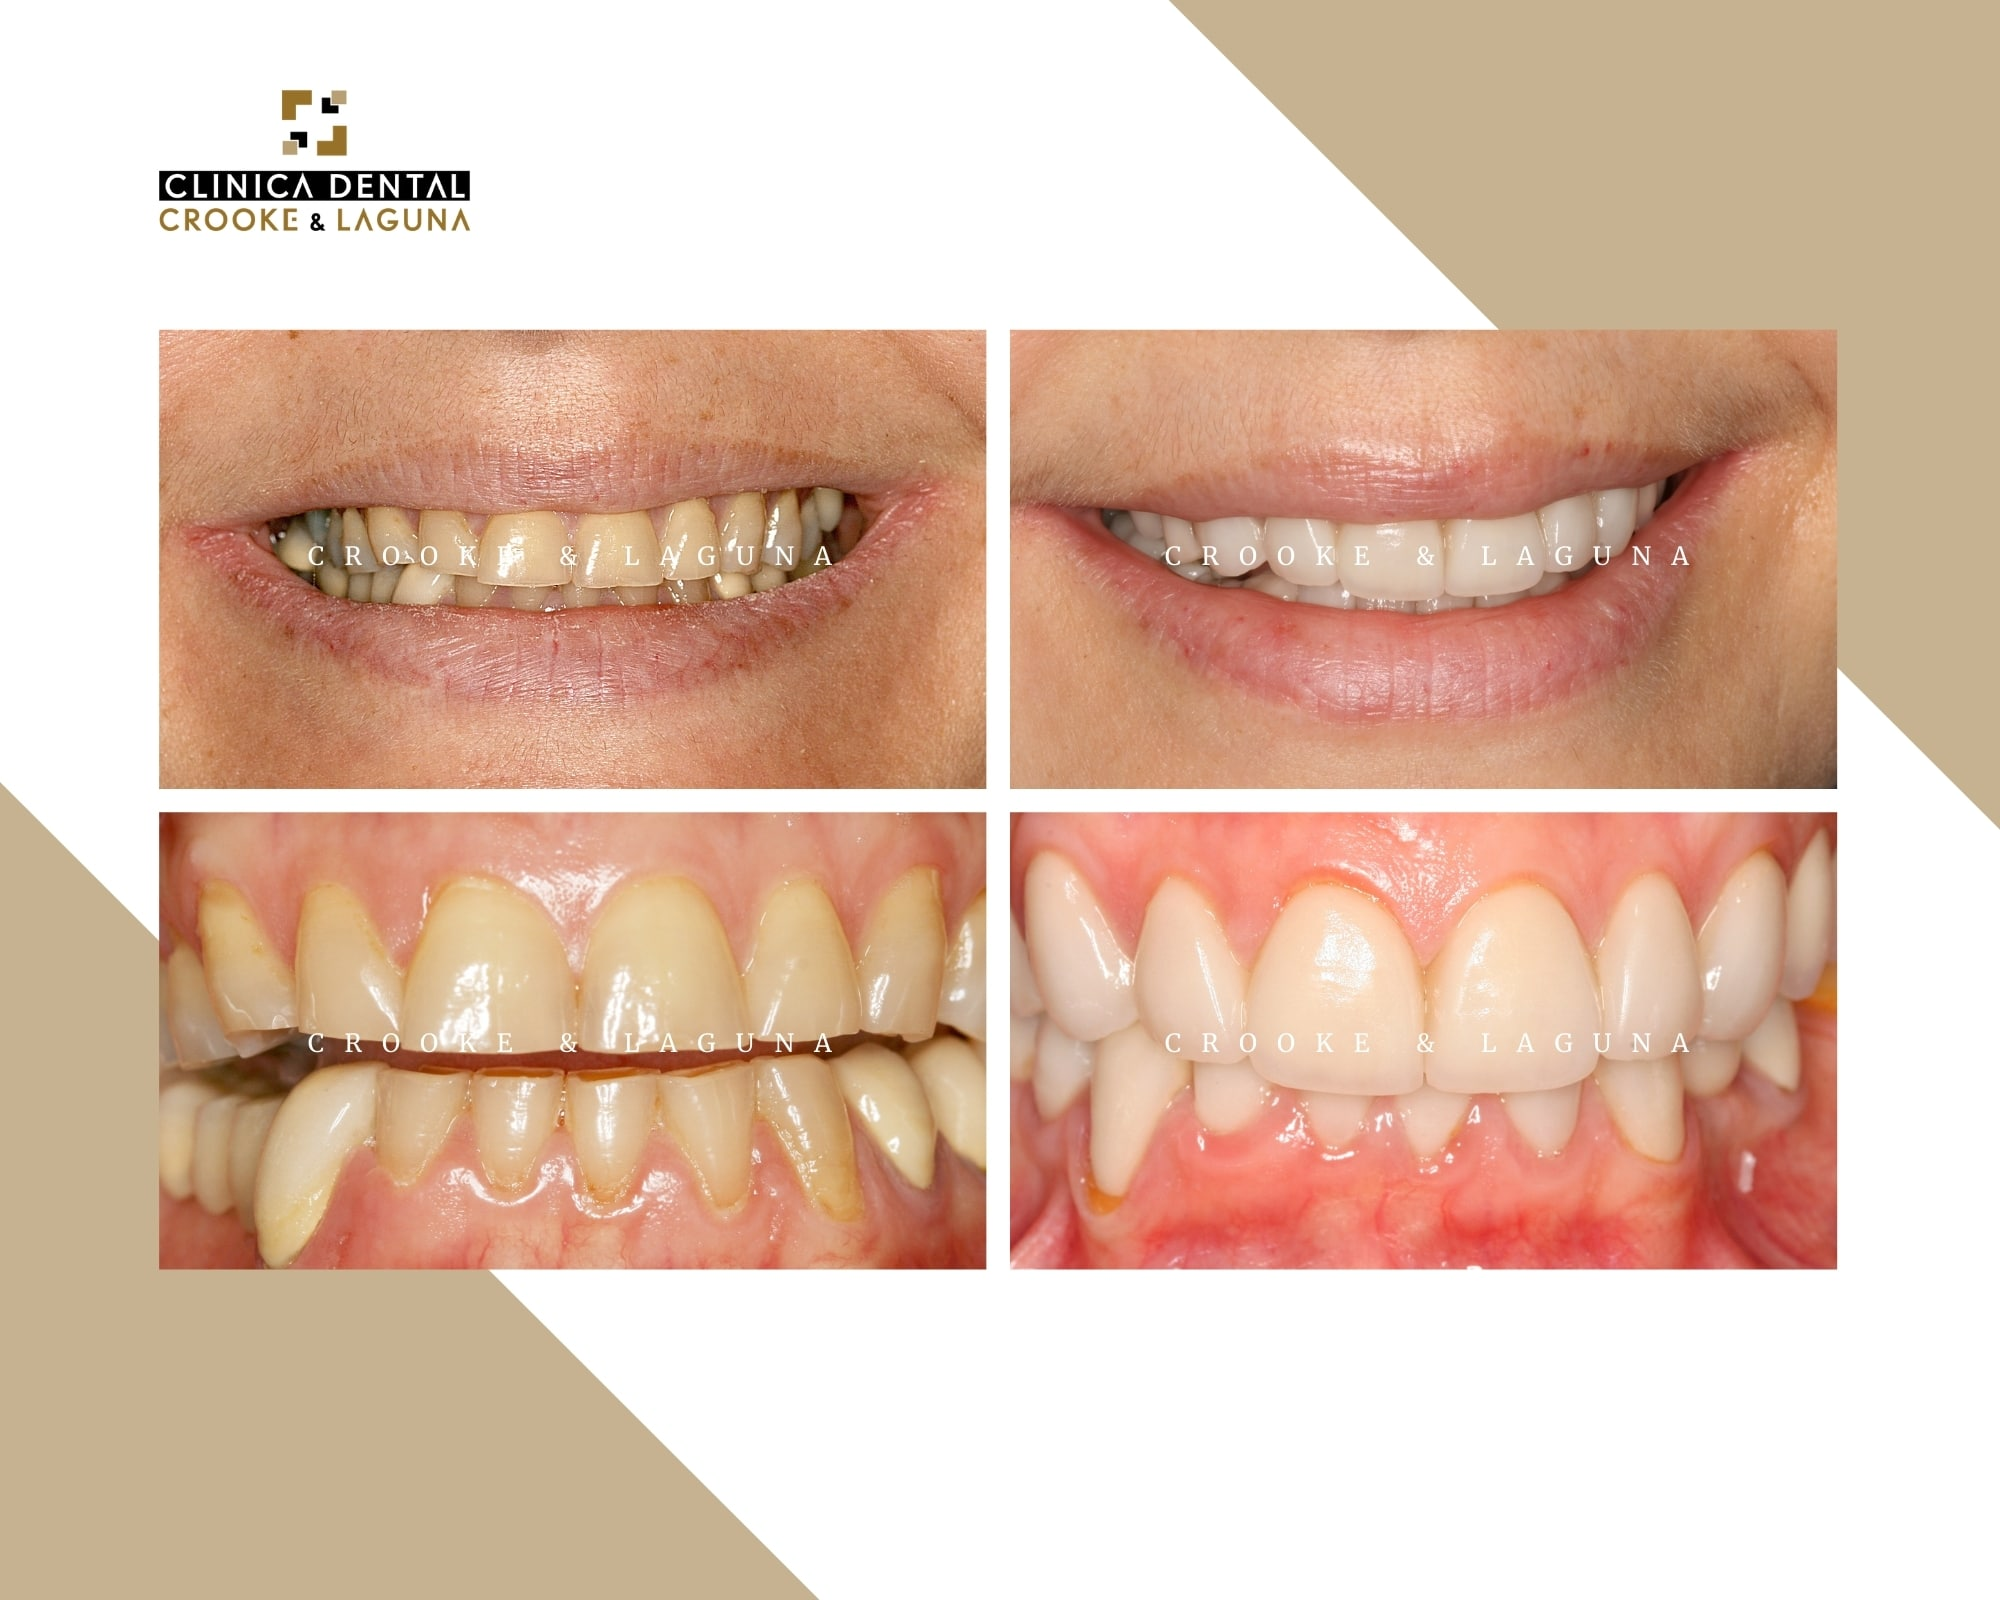 Rehabilitation with crowns and veneers